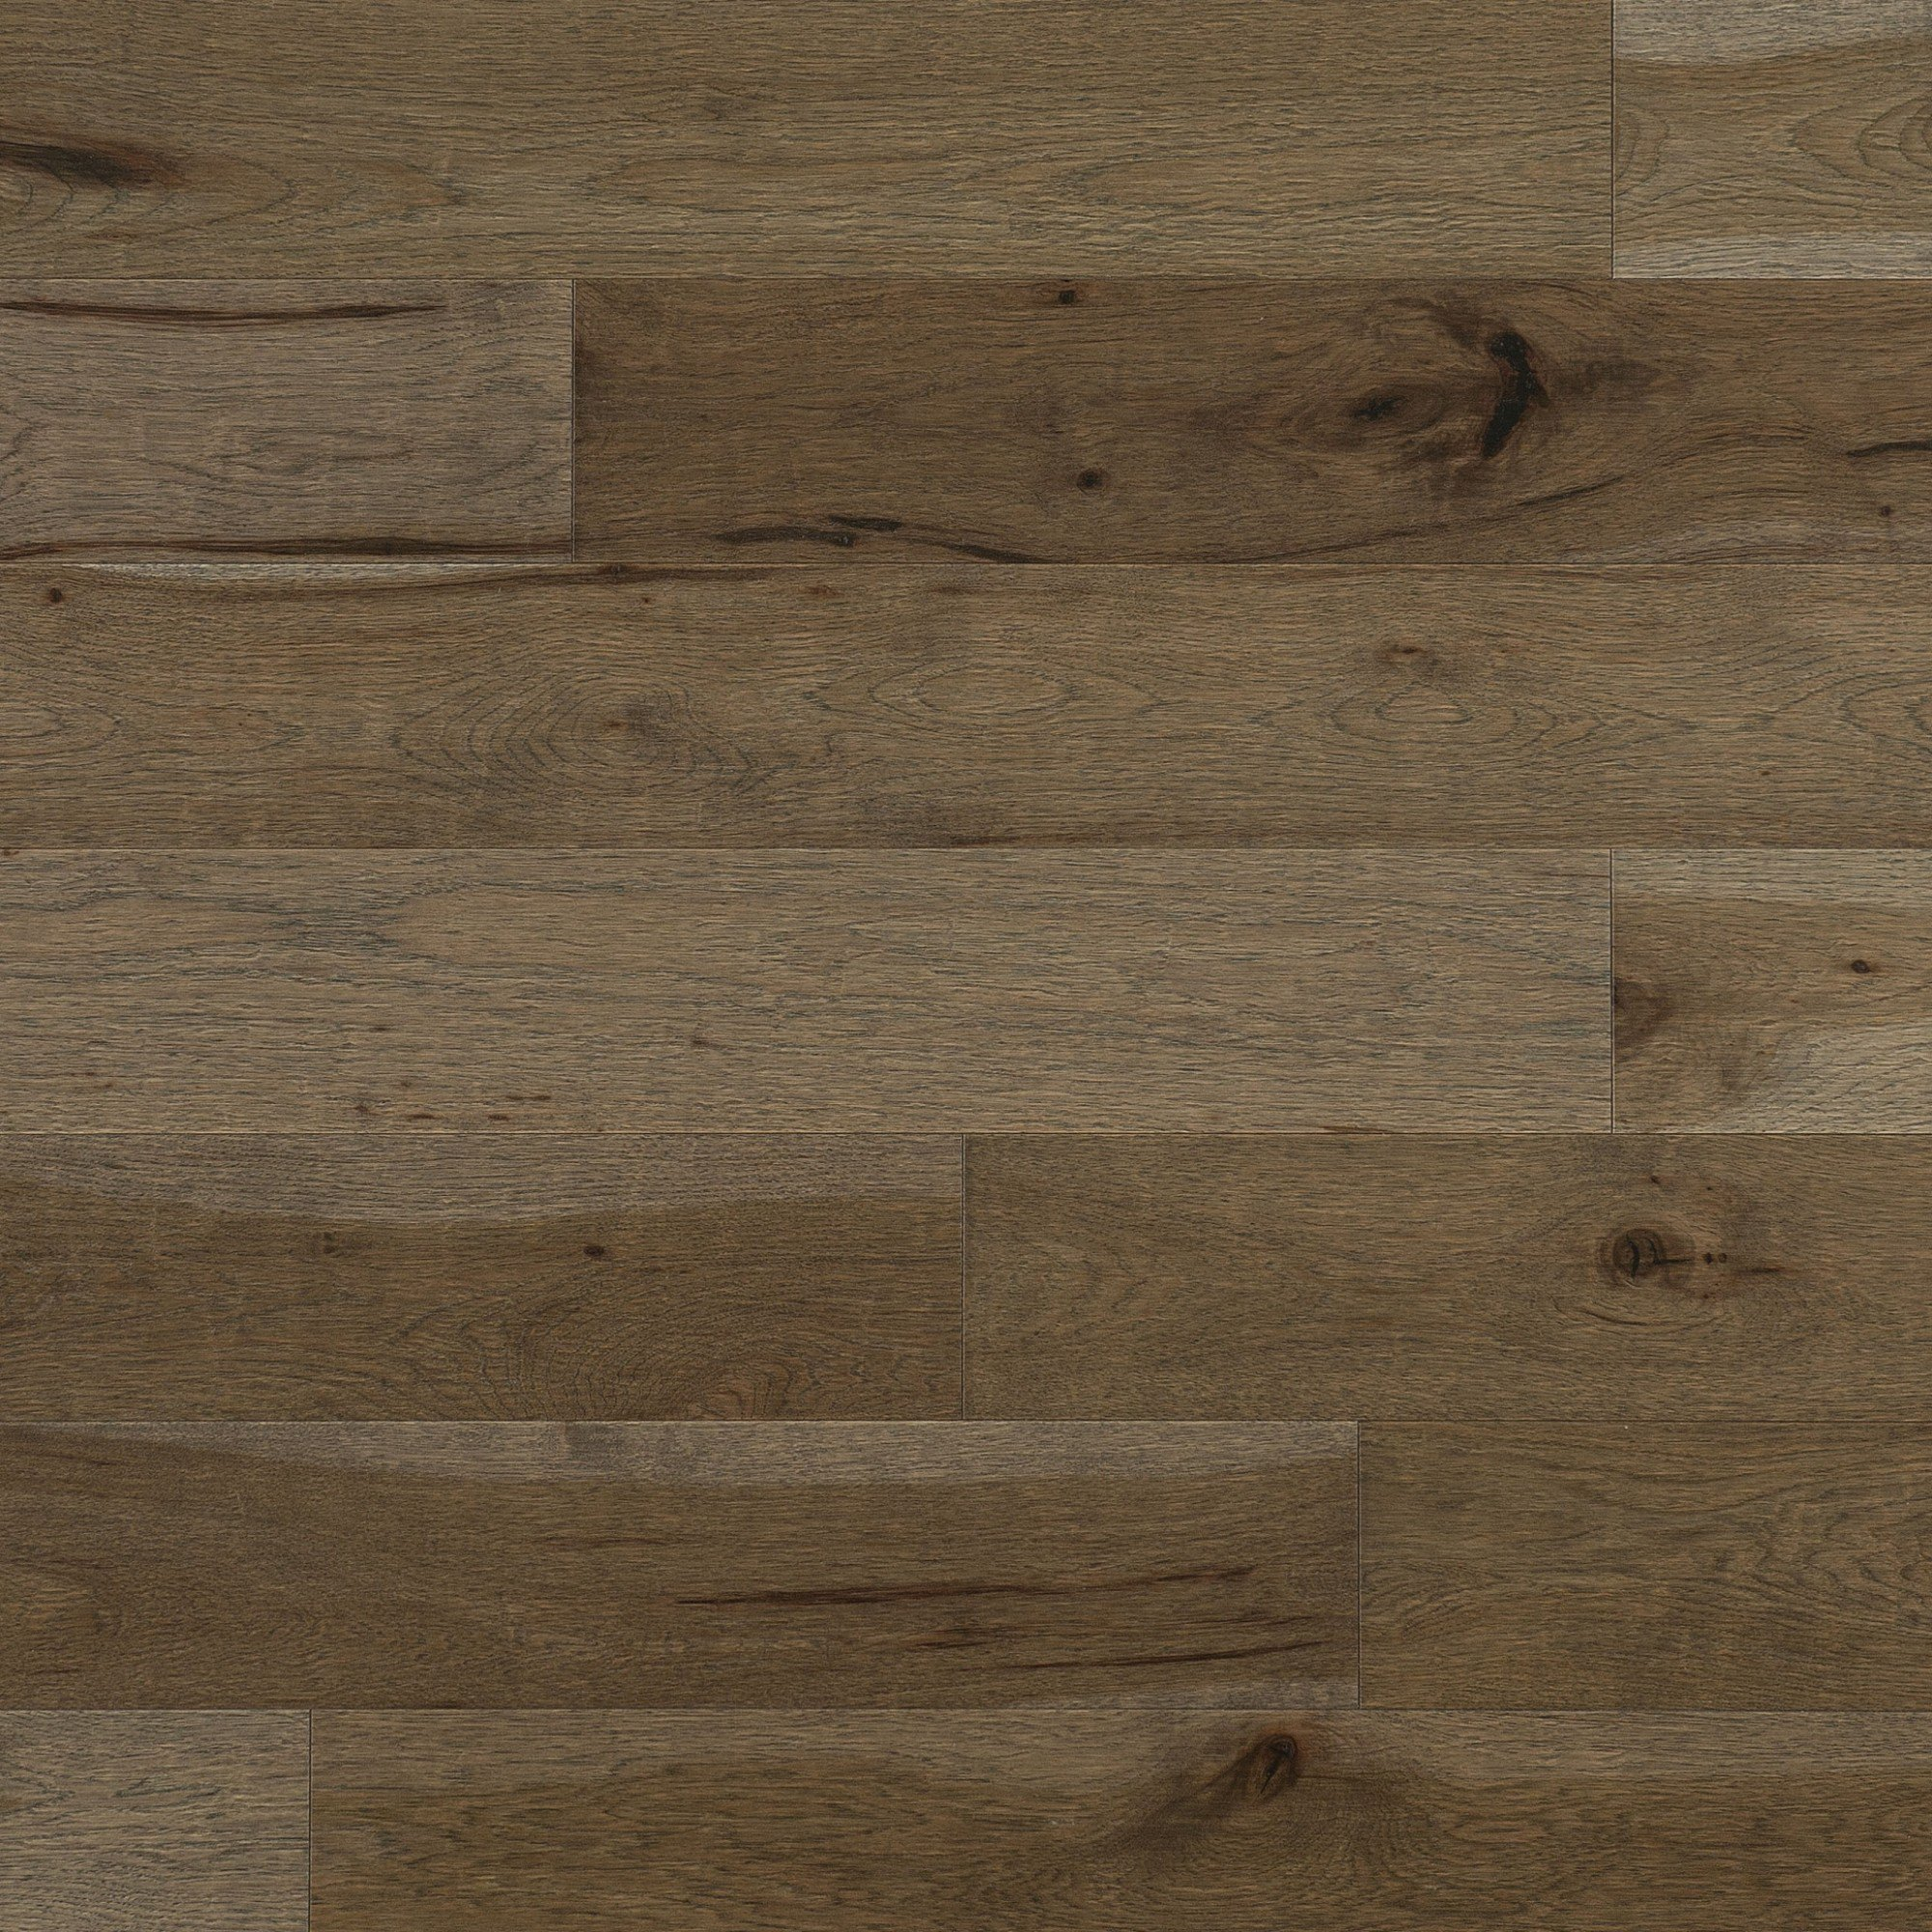 Hickory Fossil Caractère Aspect Vieilli - Image plancher